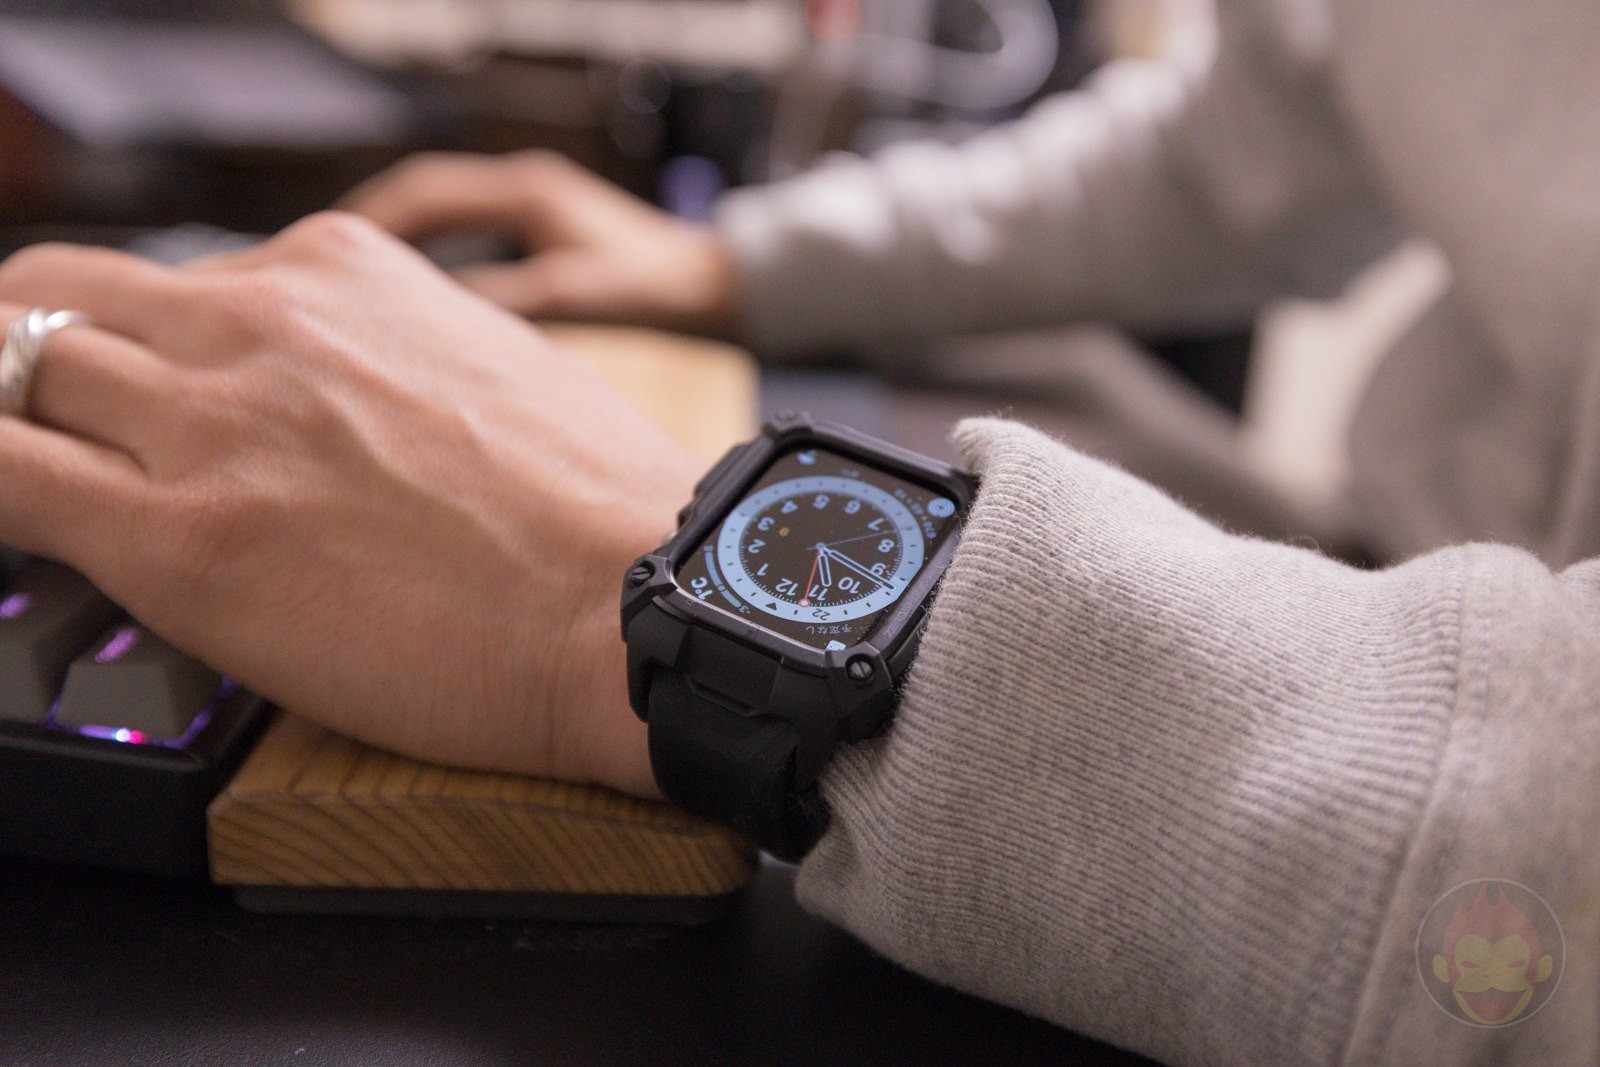 Apple Watch G SHOCK Elecom Case and UAG Band Review 01